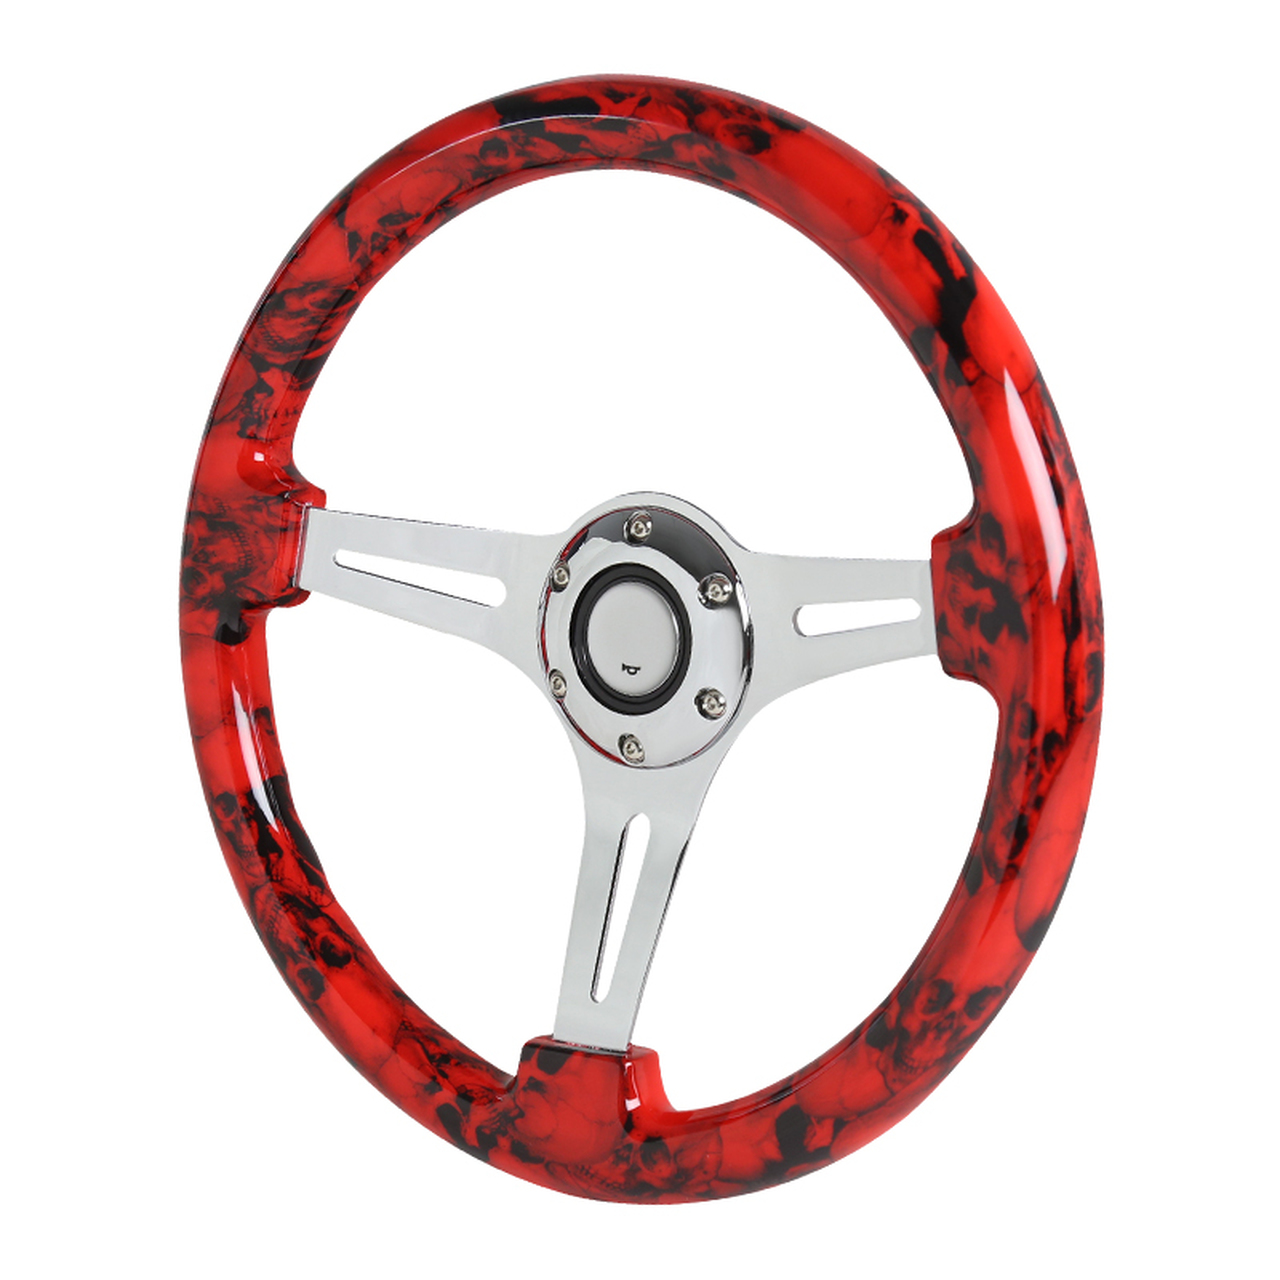 Spec-D Tuning 350mm 3-Spoke Wooden Deep Dish Steering Wheel - Spec-D Tuning SW-1432-HSDKL